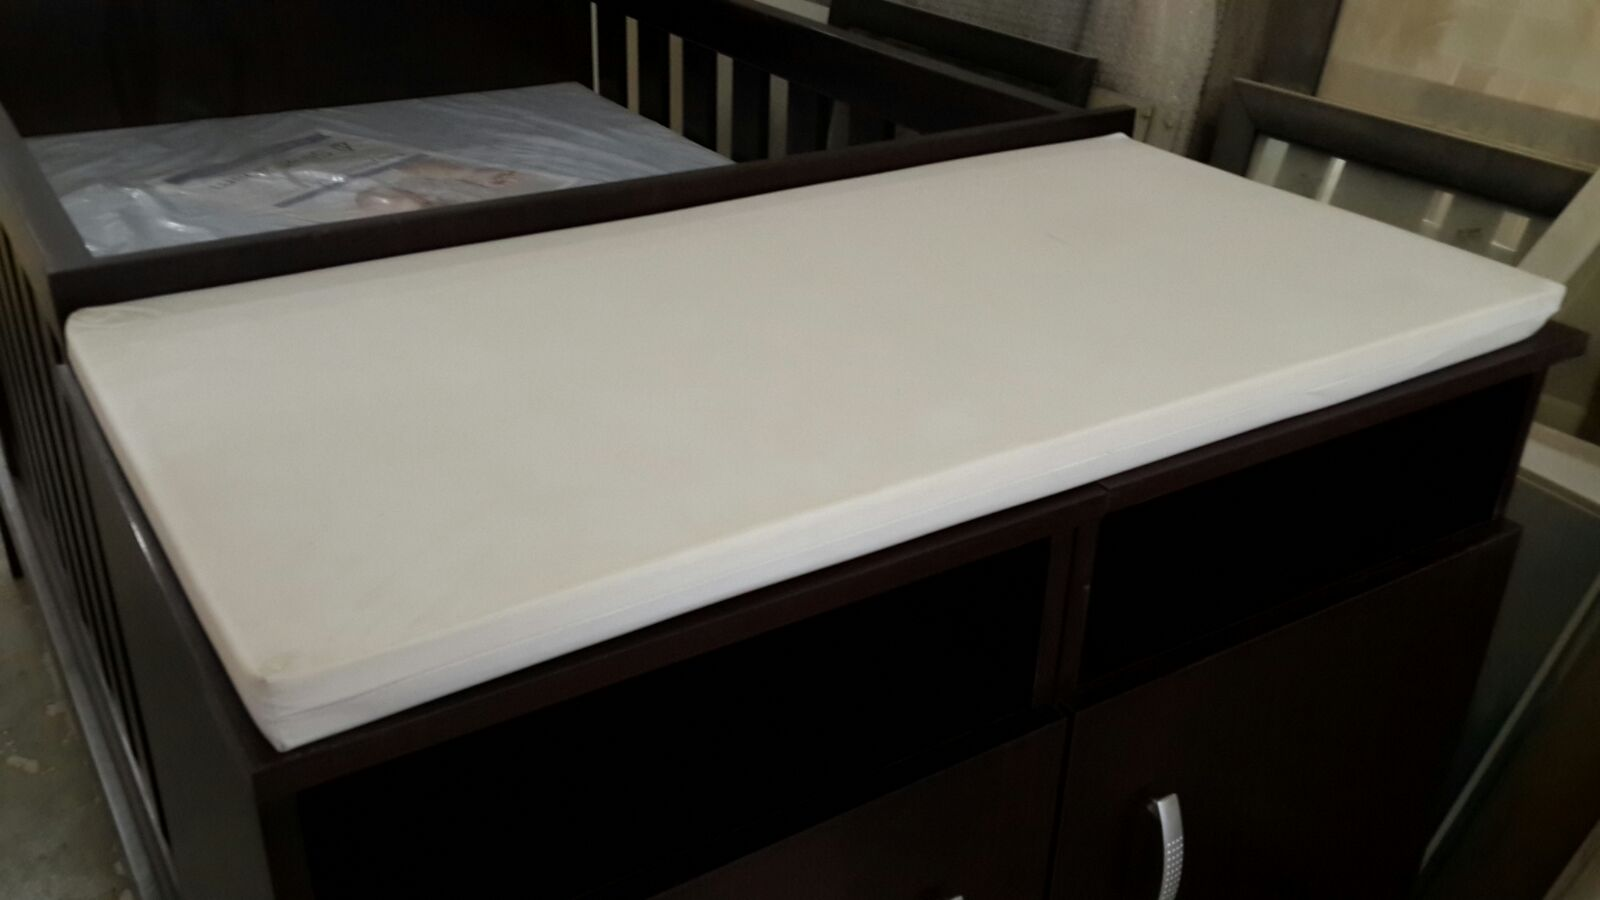 Furniture Express: Mattress For Changing Table